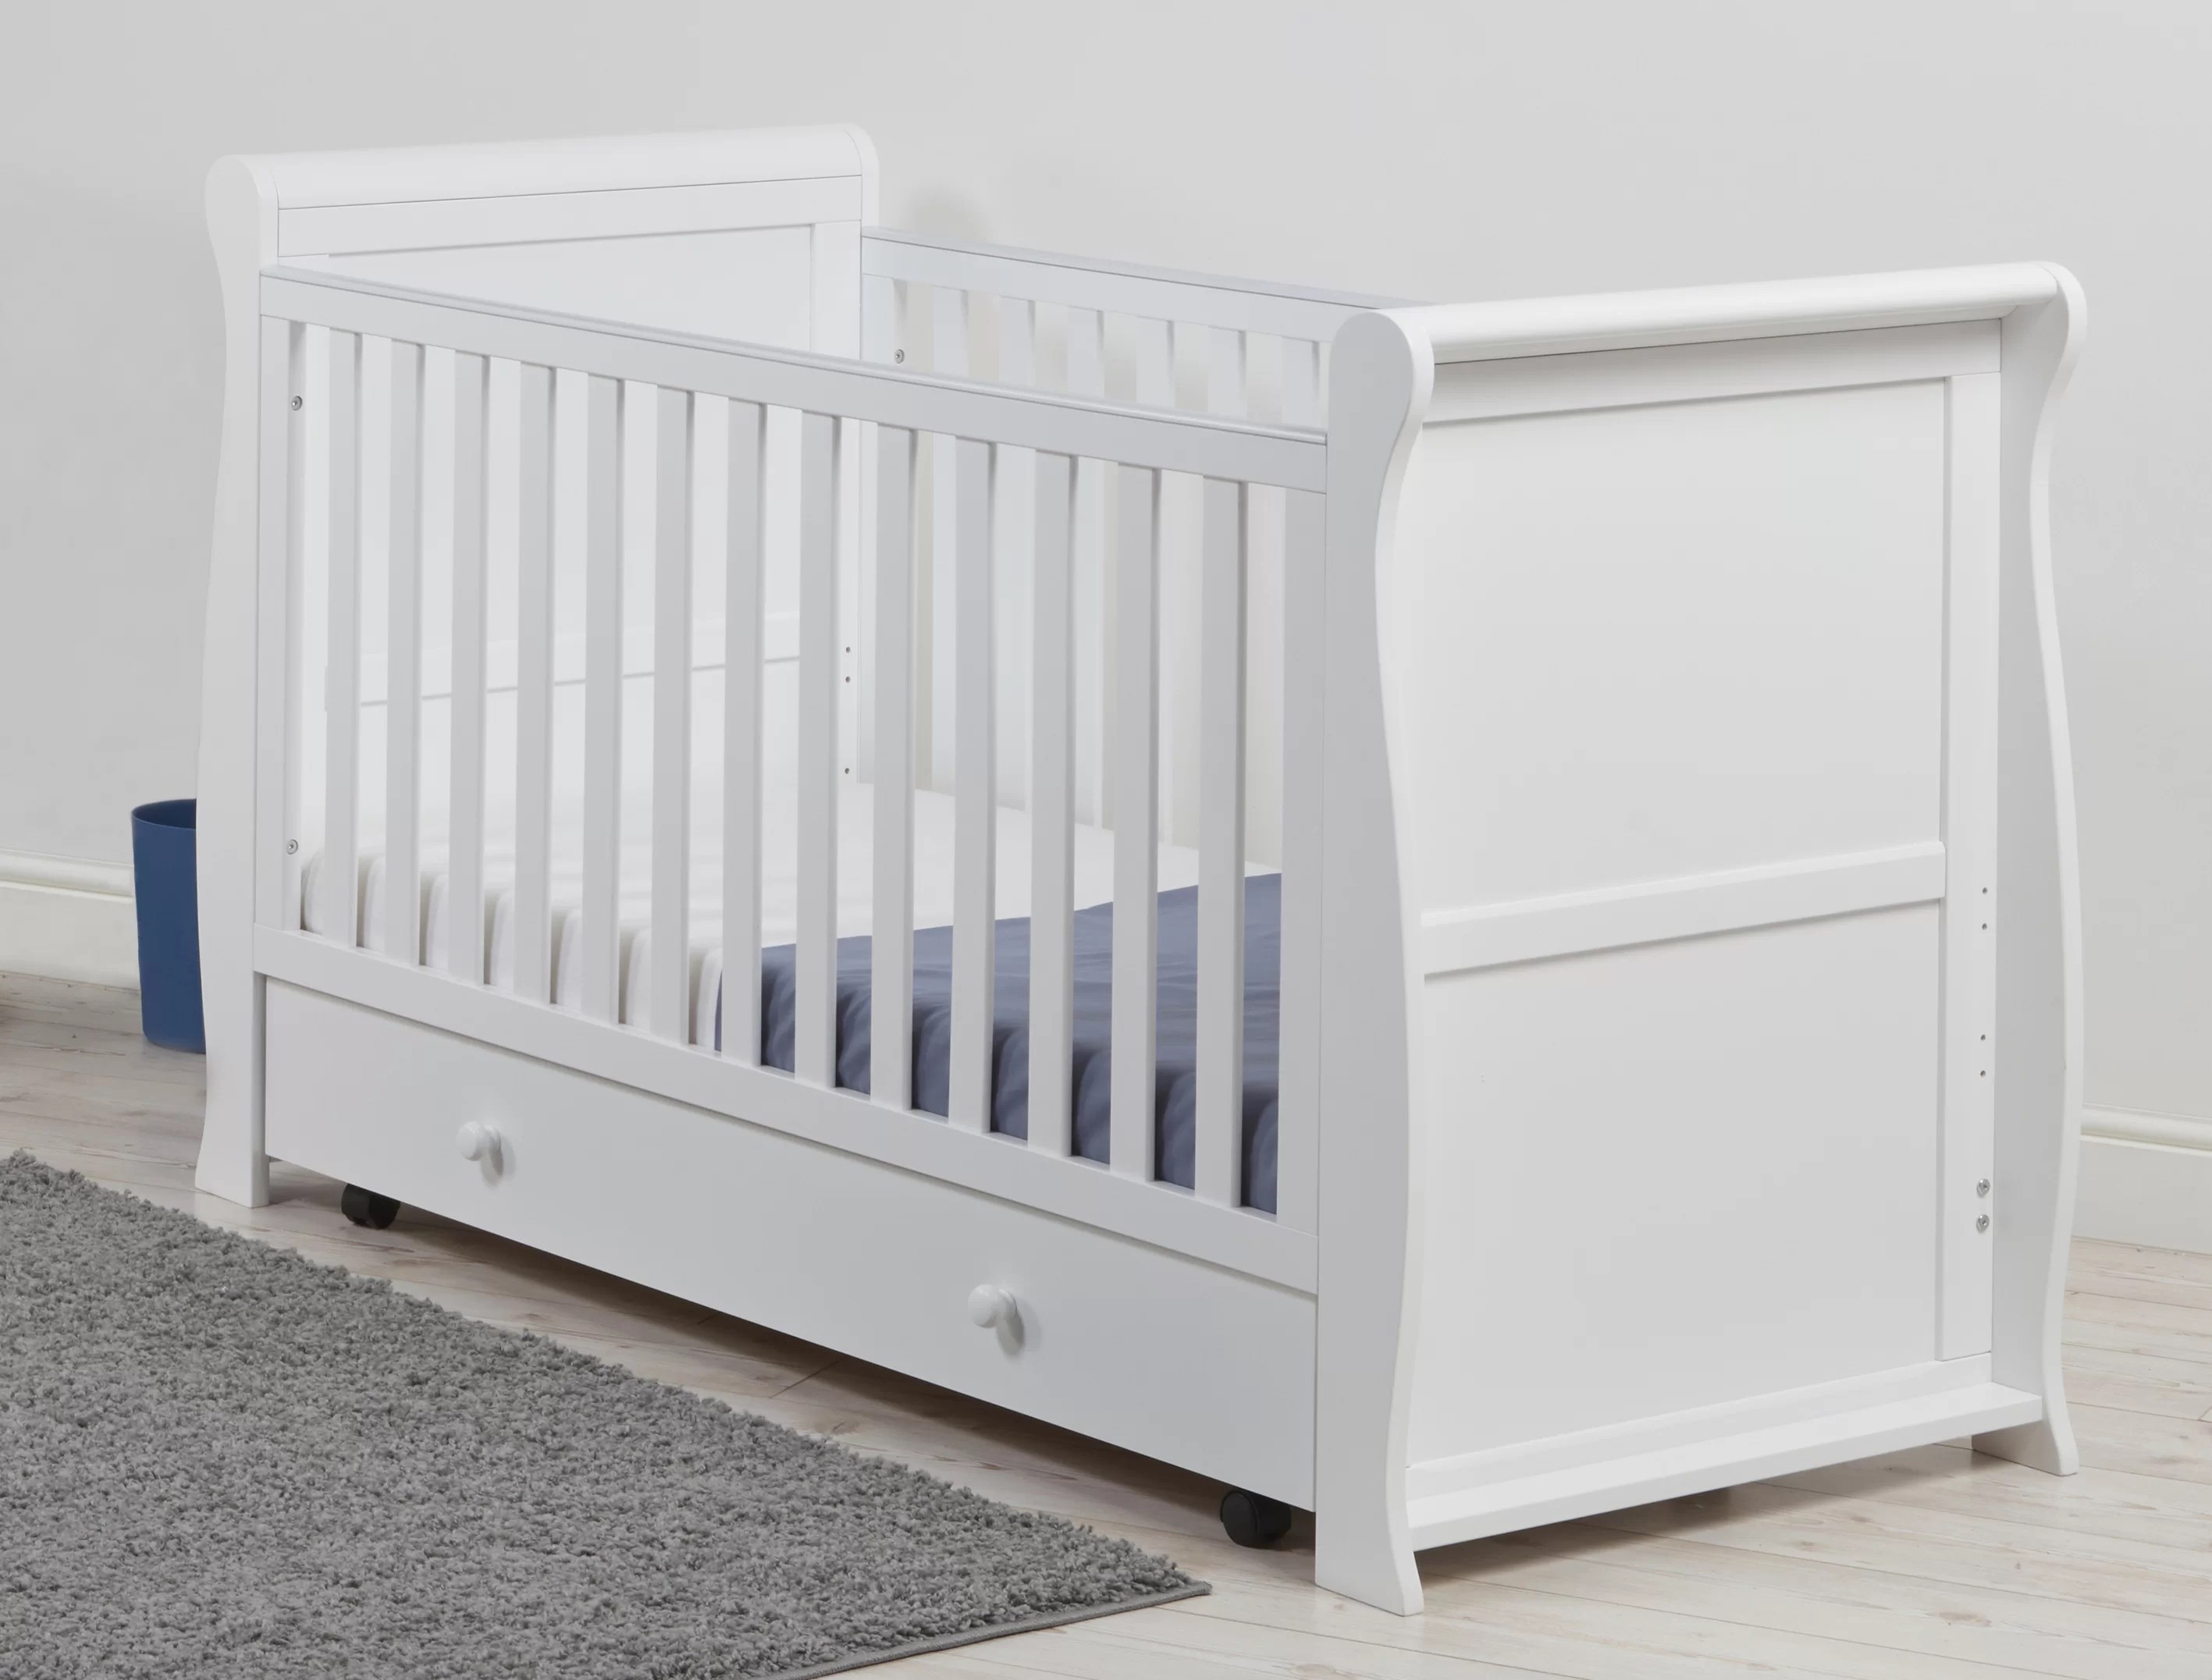 Cot Mattress 170 X 40 Avicia Cot Bed